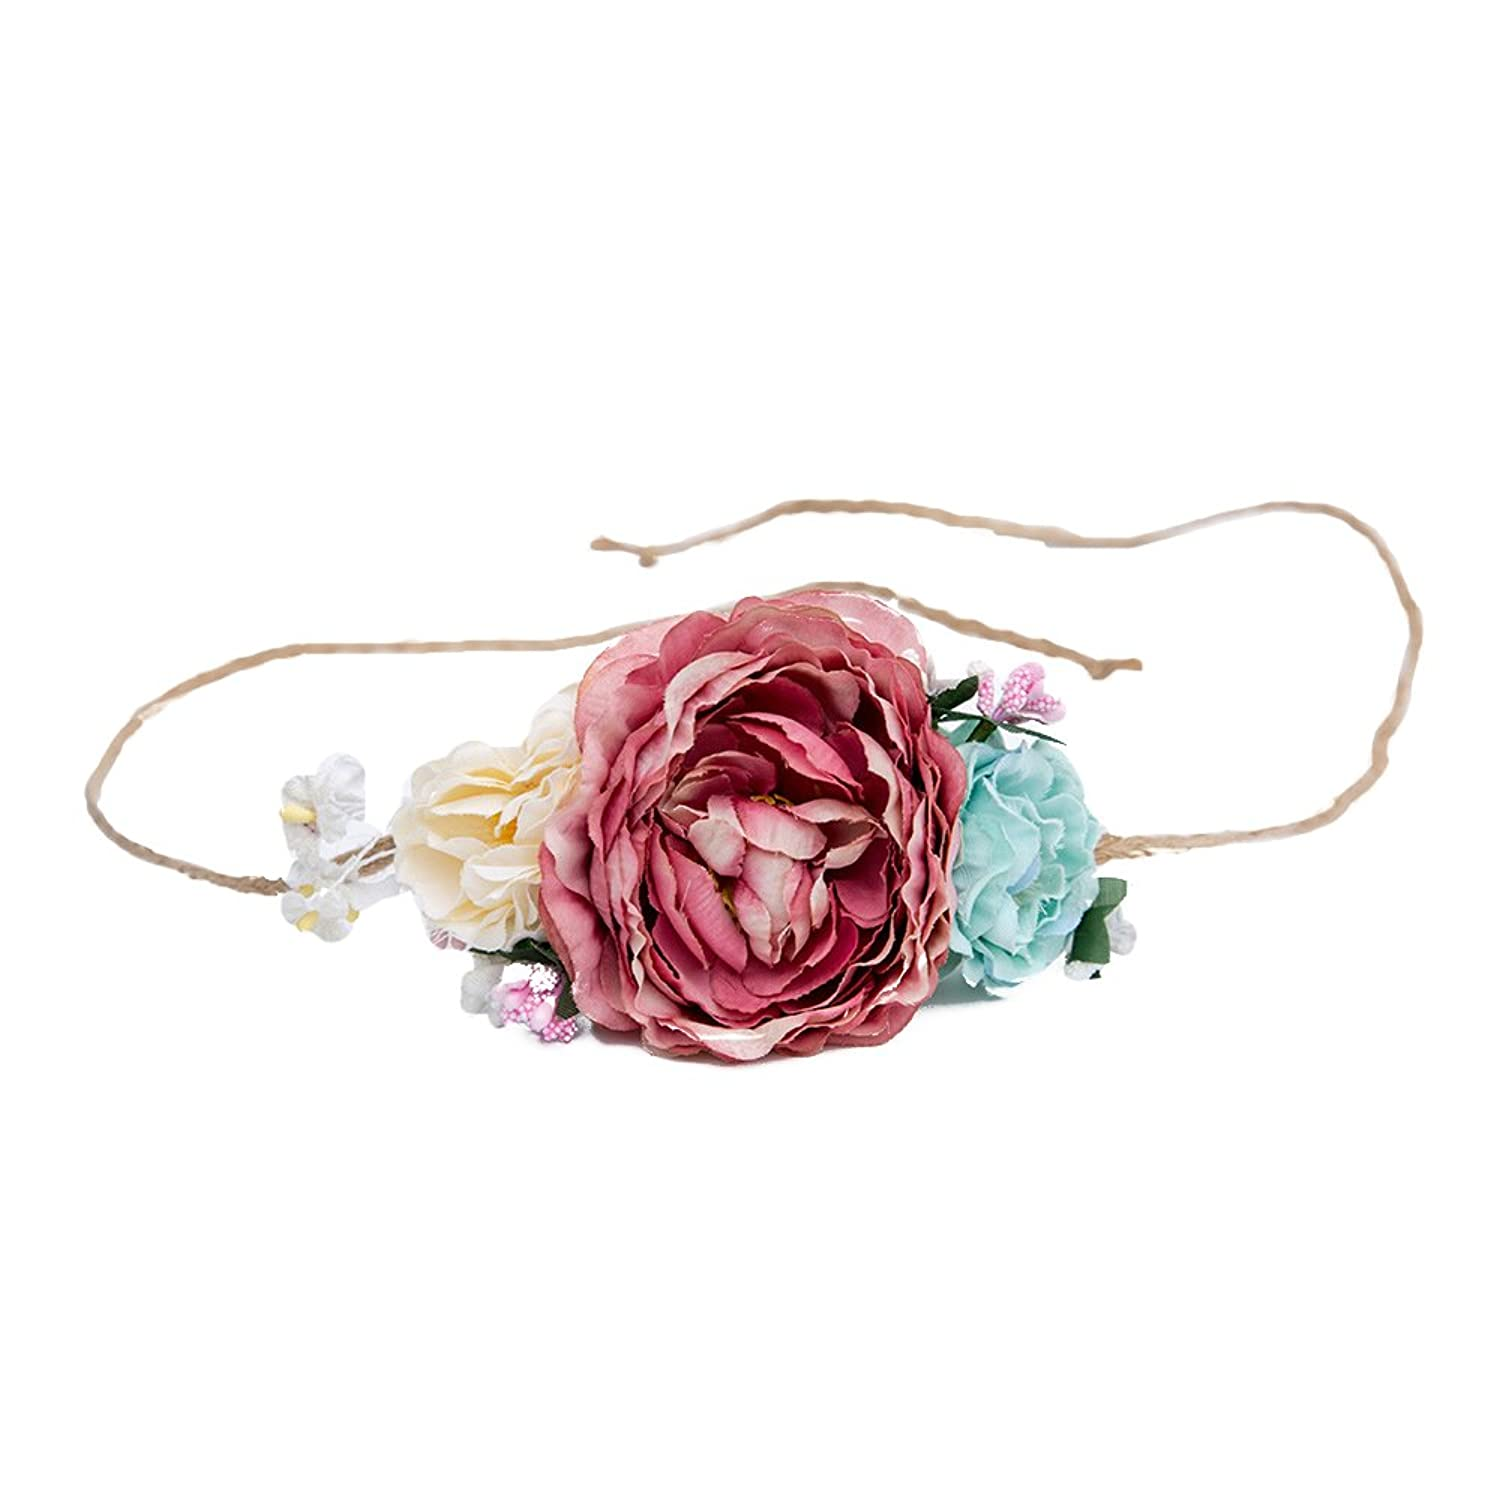 Hot Sale Tieback Flower Crown Belt Hair Band Party Decoration For